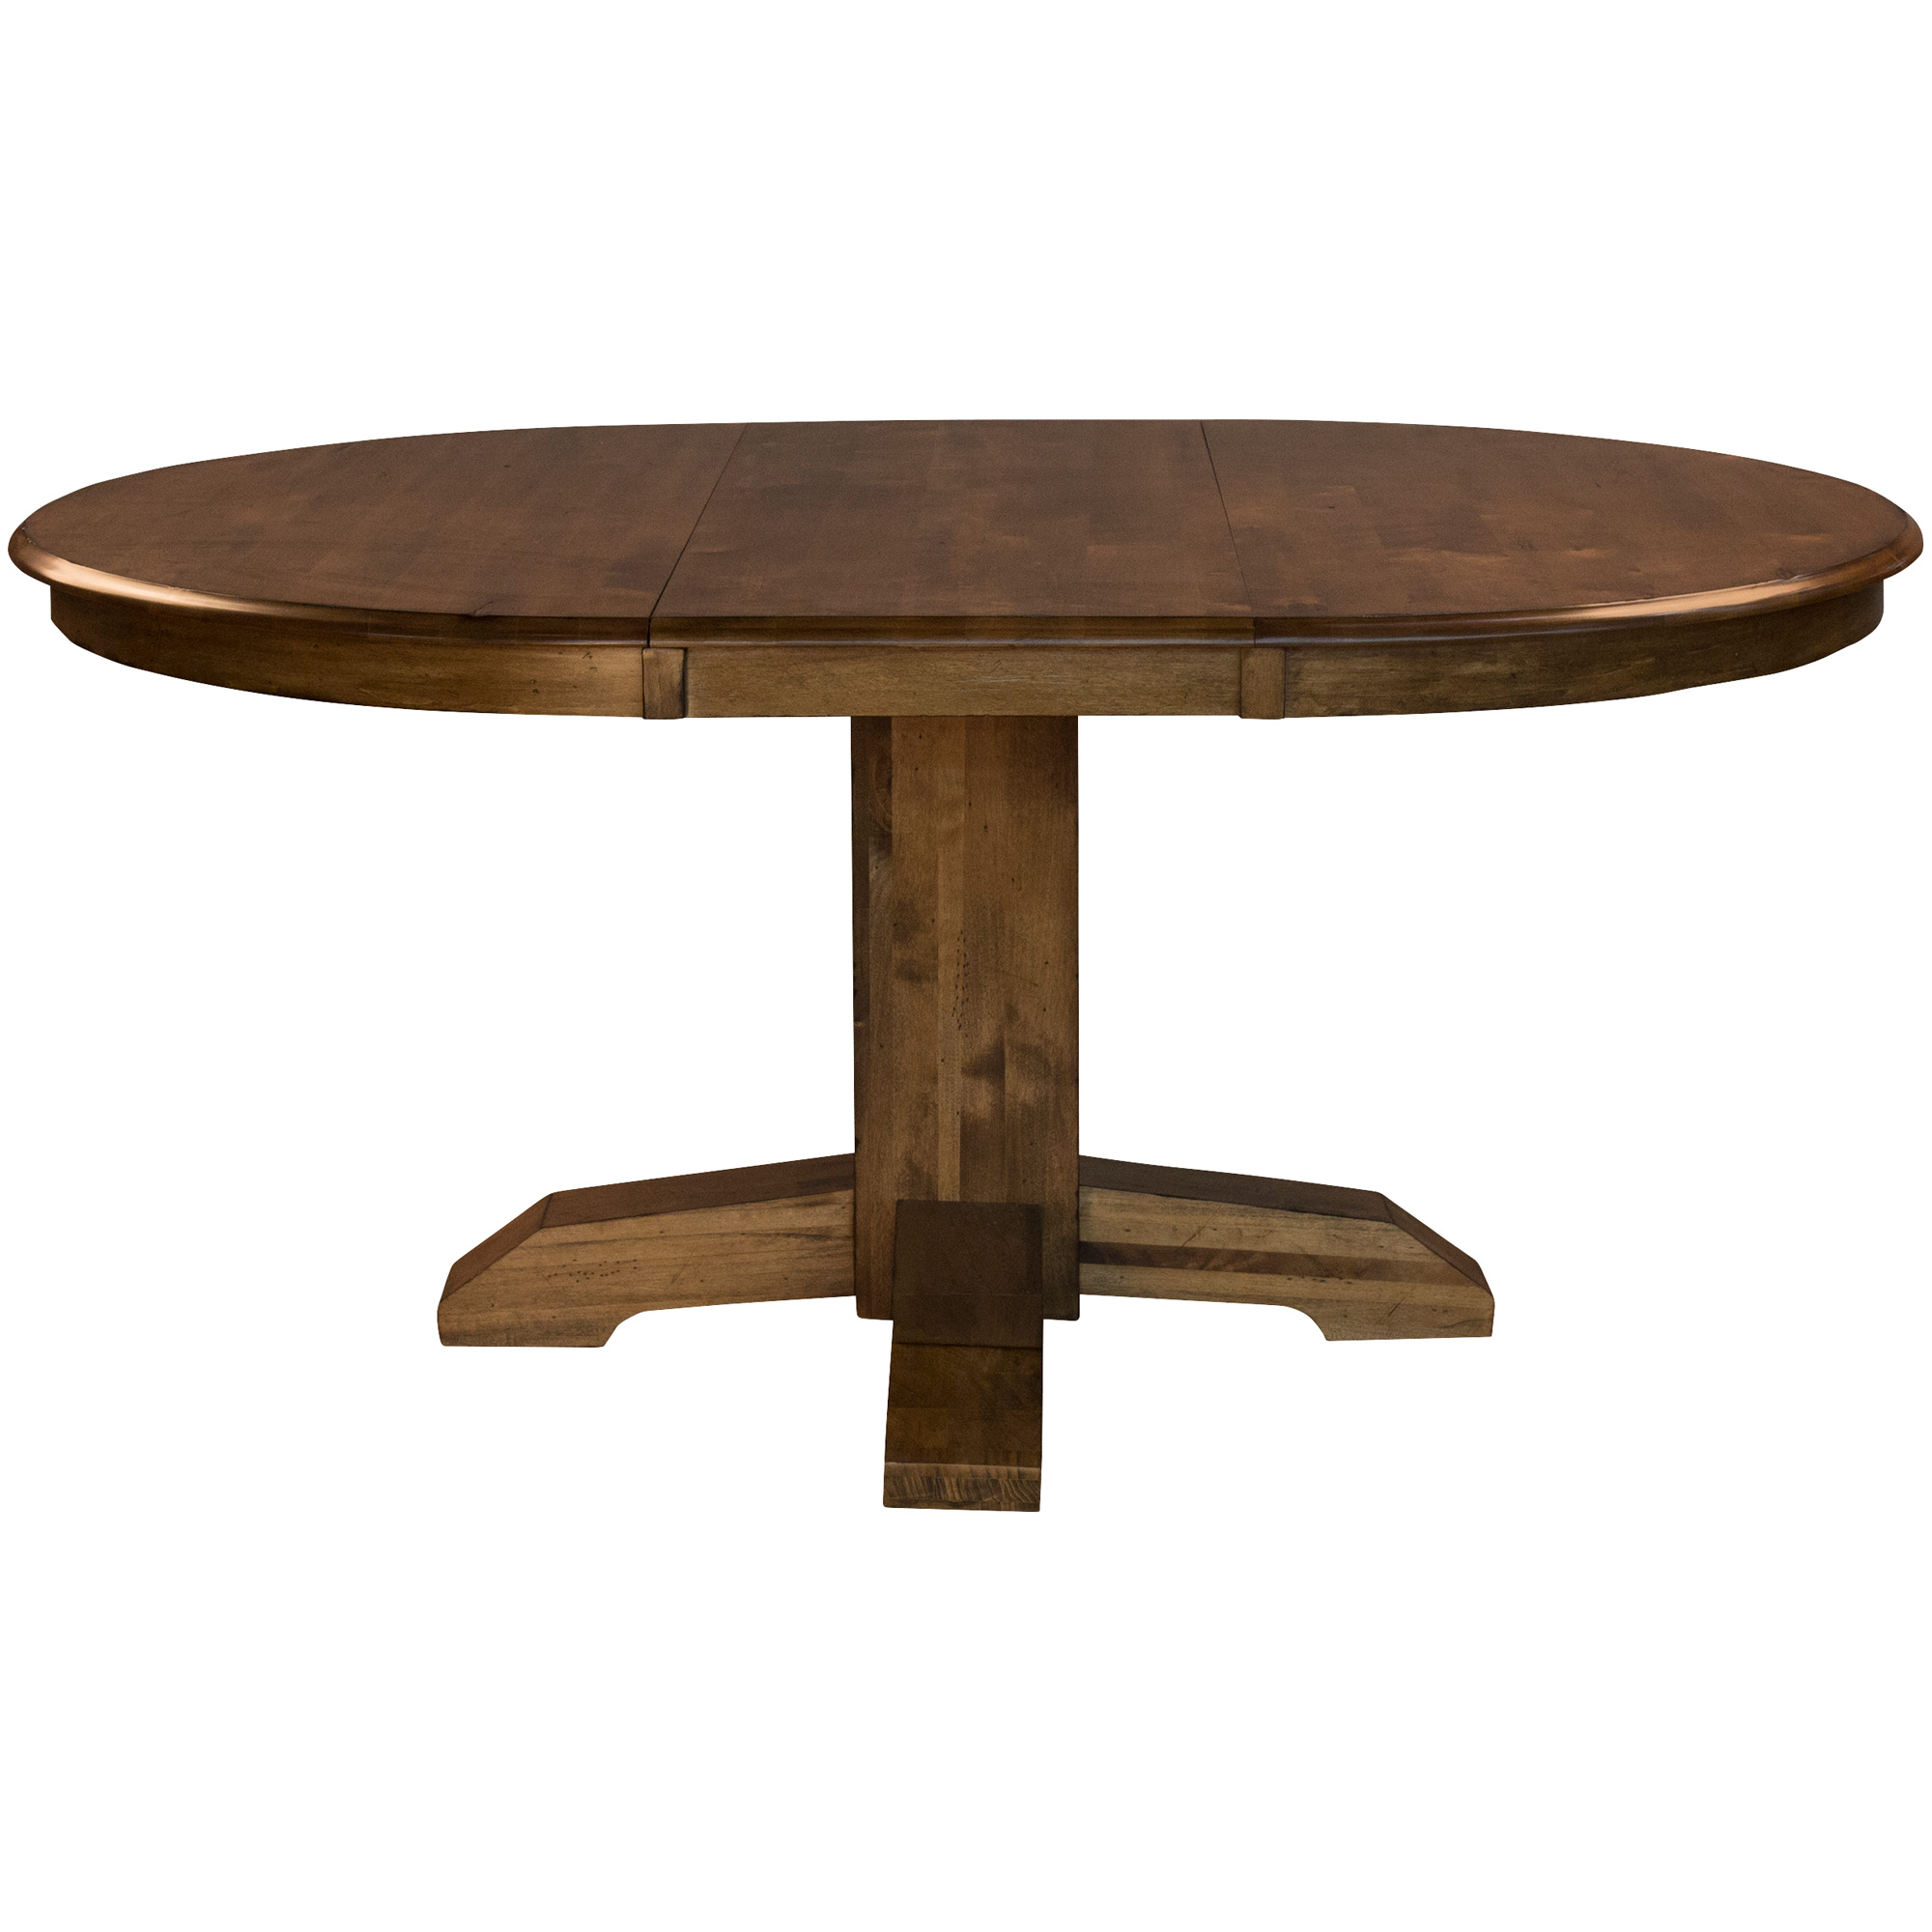 America | Bennett Smokey Quartz Dining Table